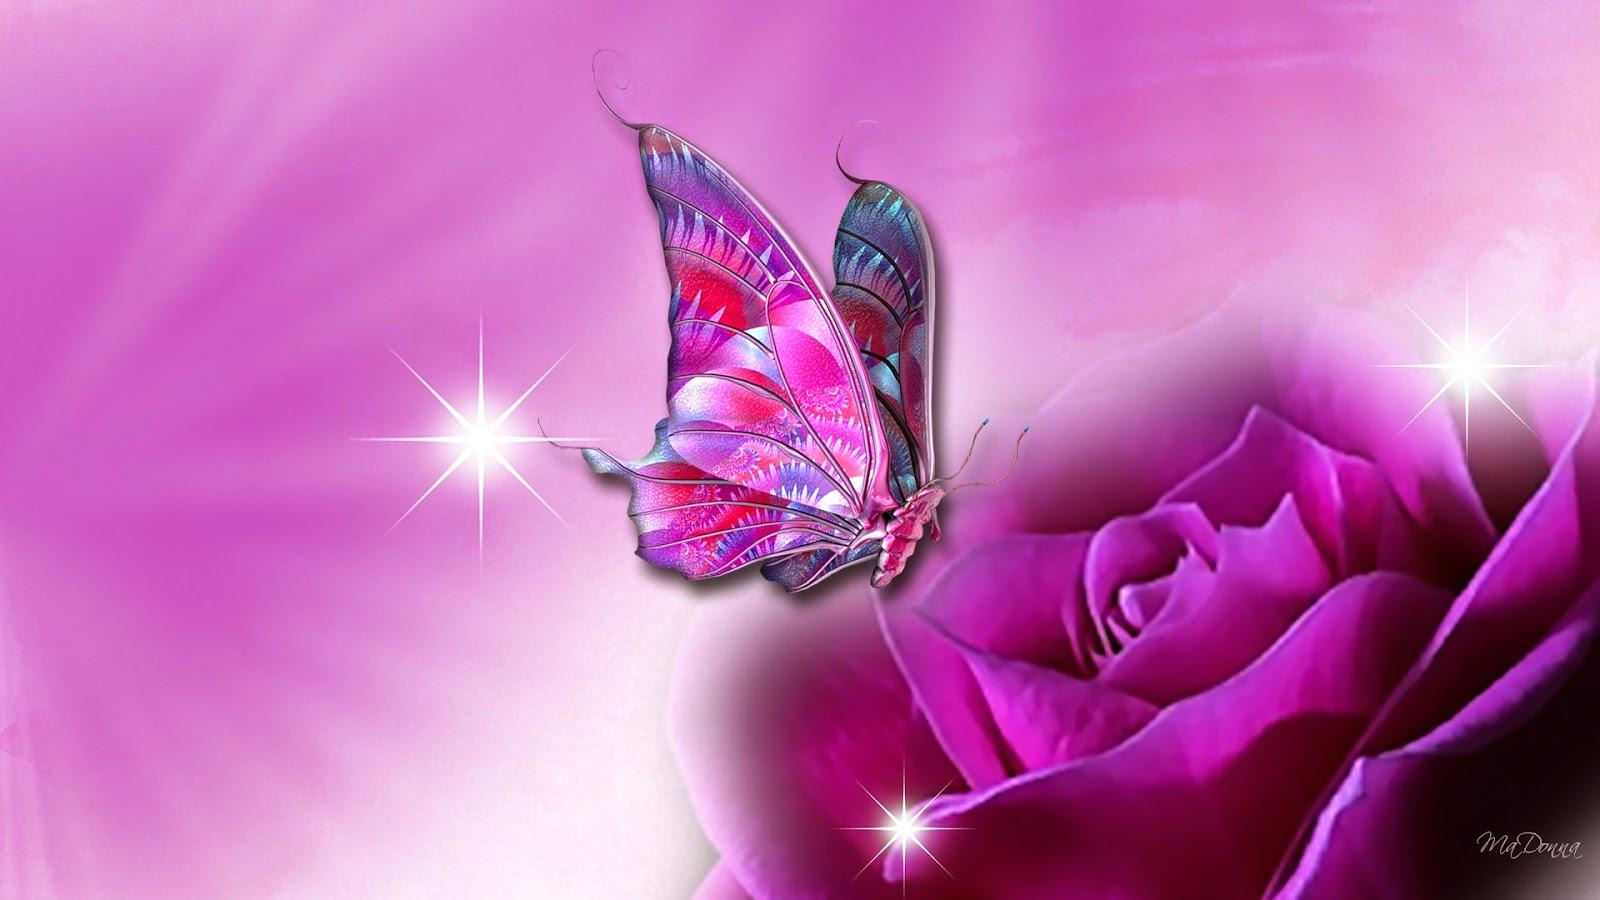 Aesthetic Butterfly Laptop Wallpapers - Wallpaper Cave